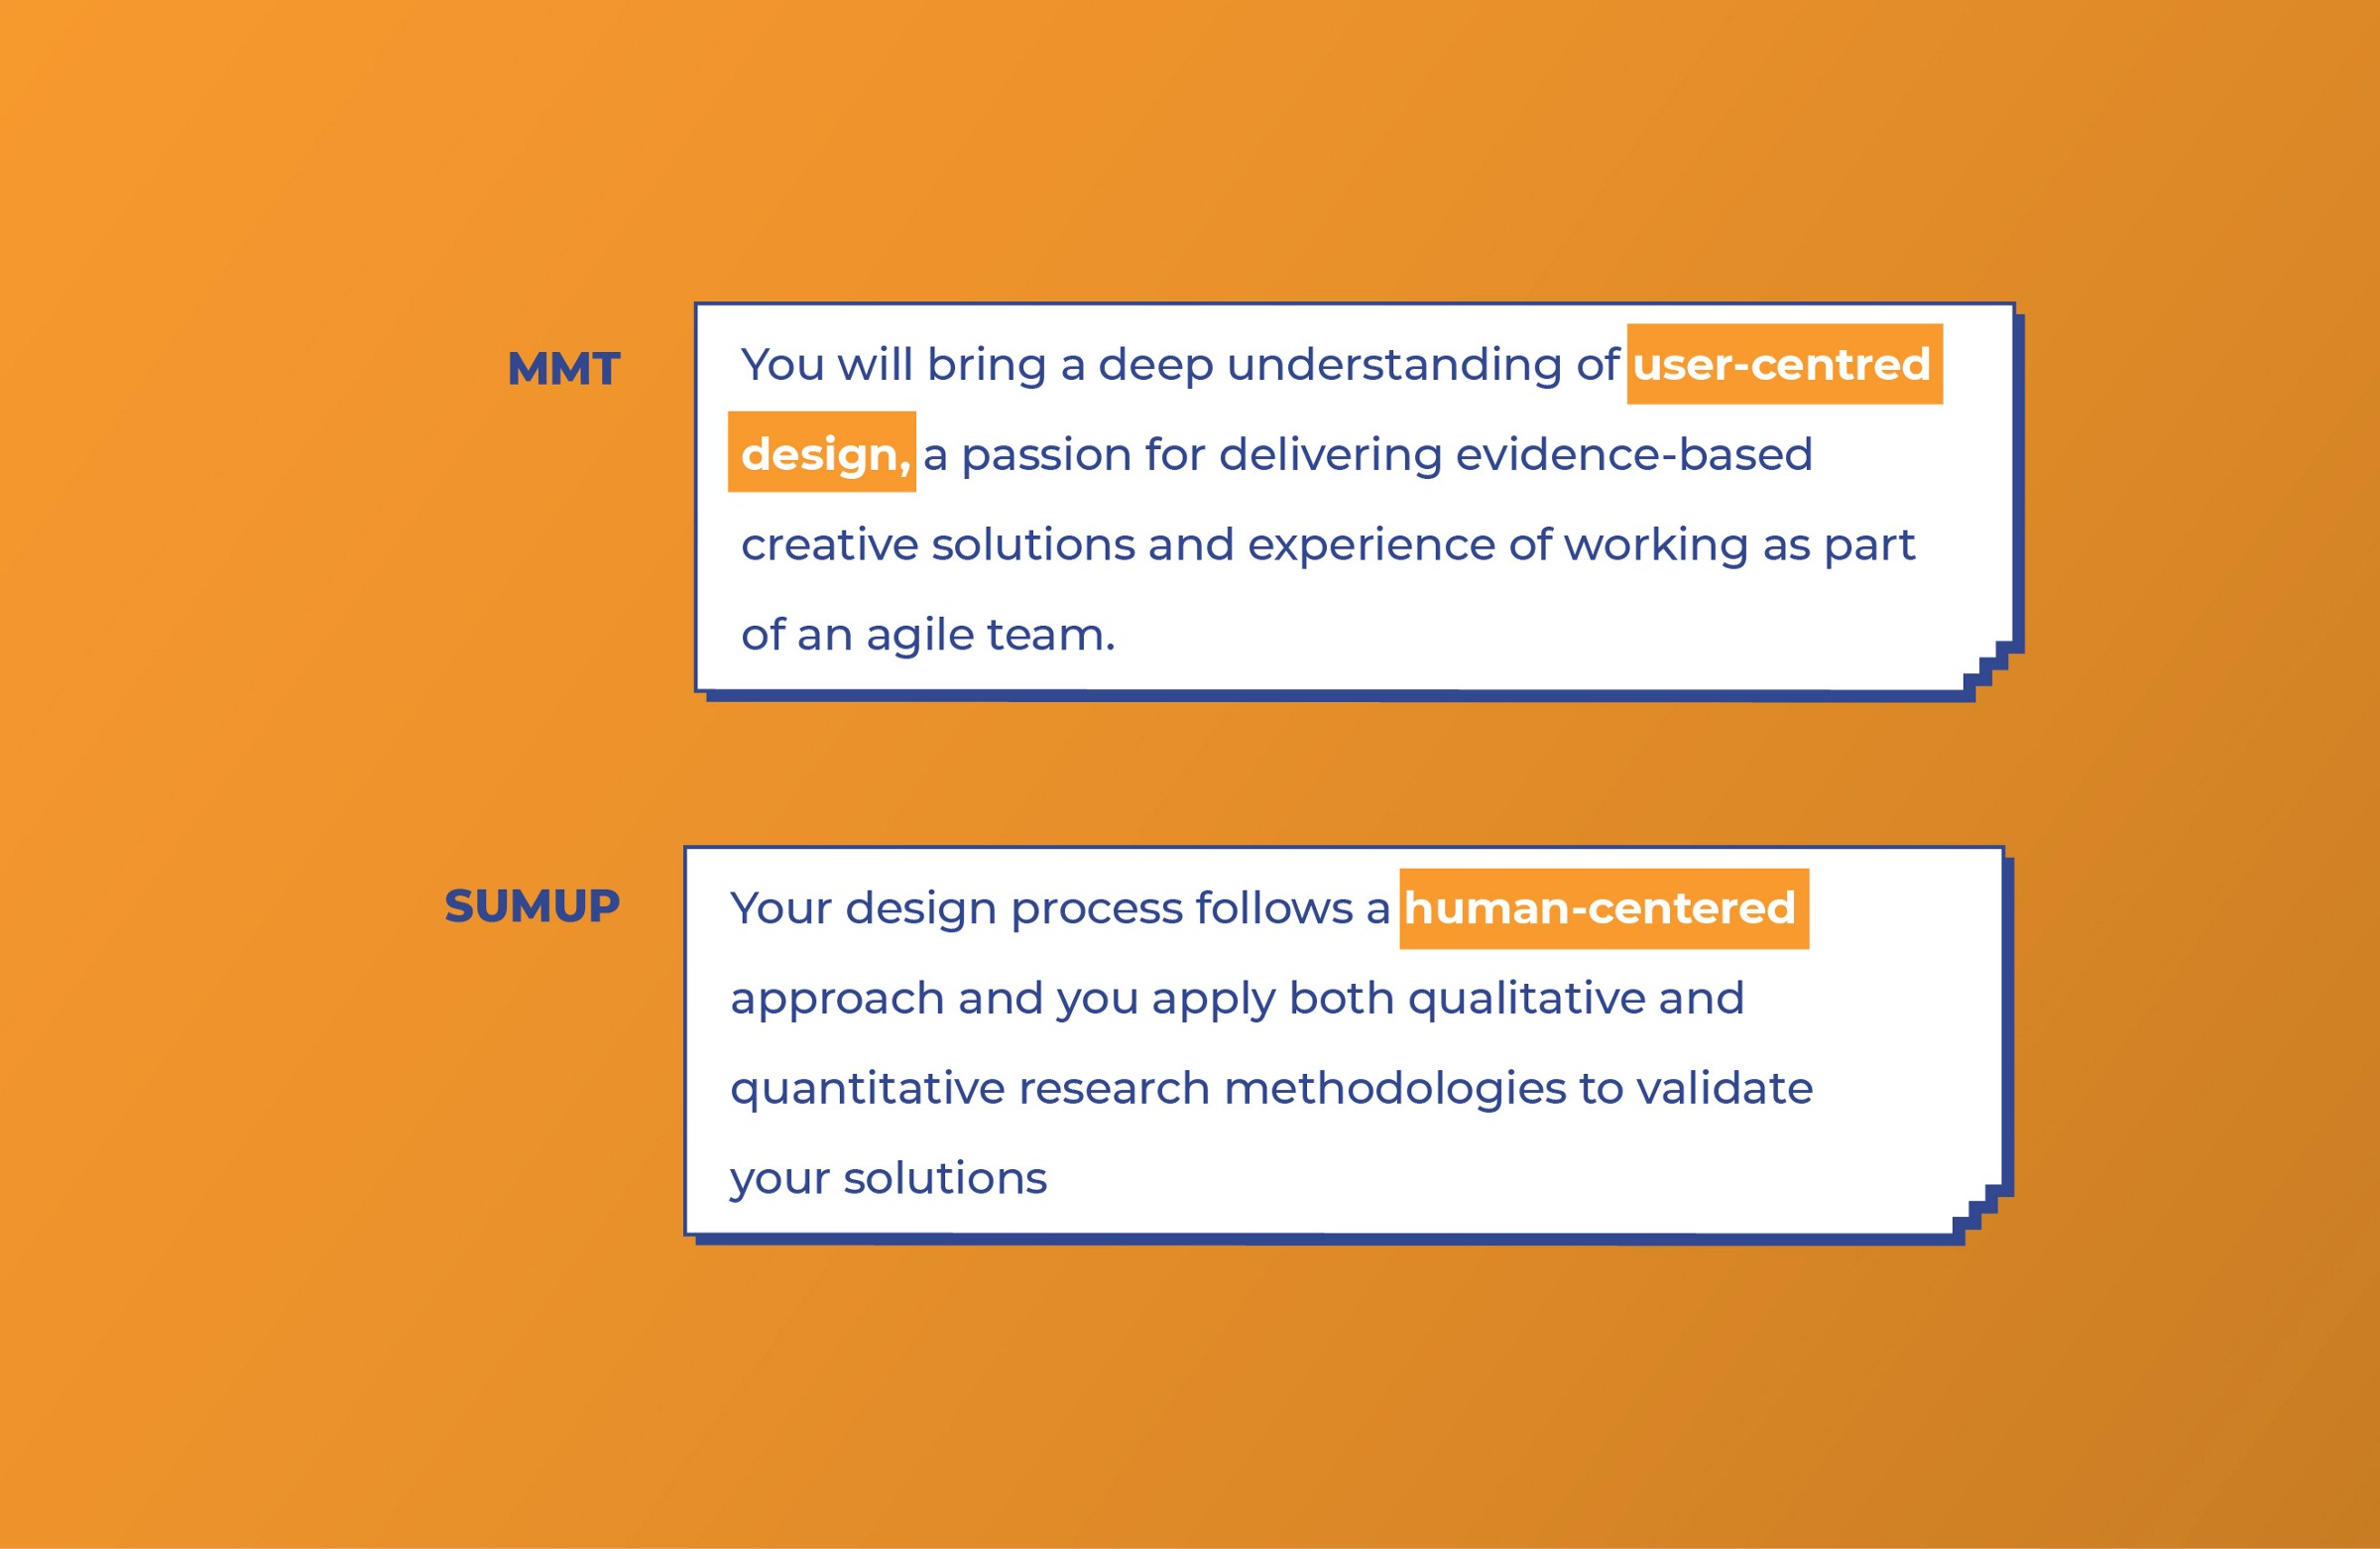 MMT and Sumup look for User-centered design skills from UI designers